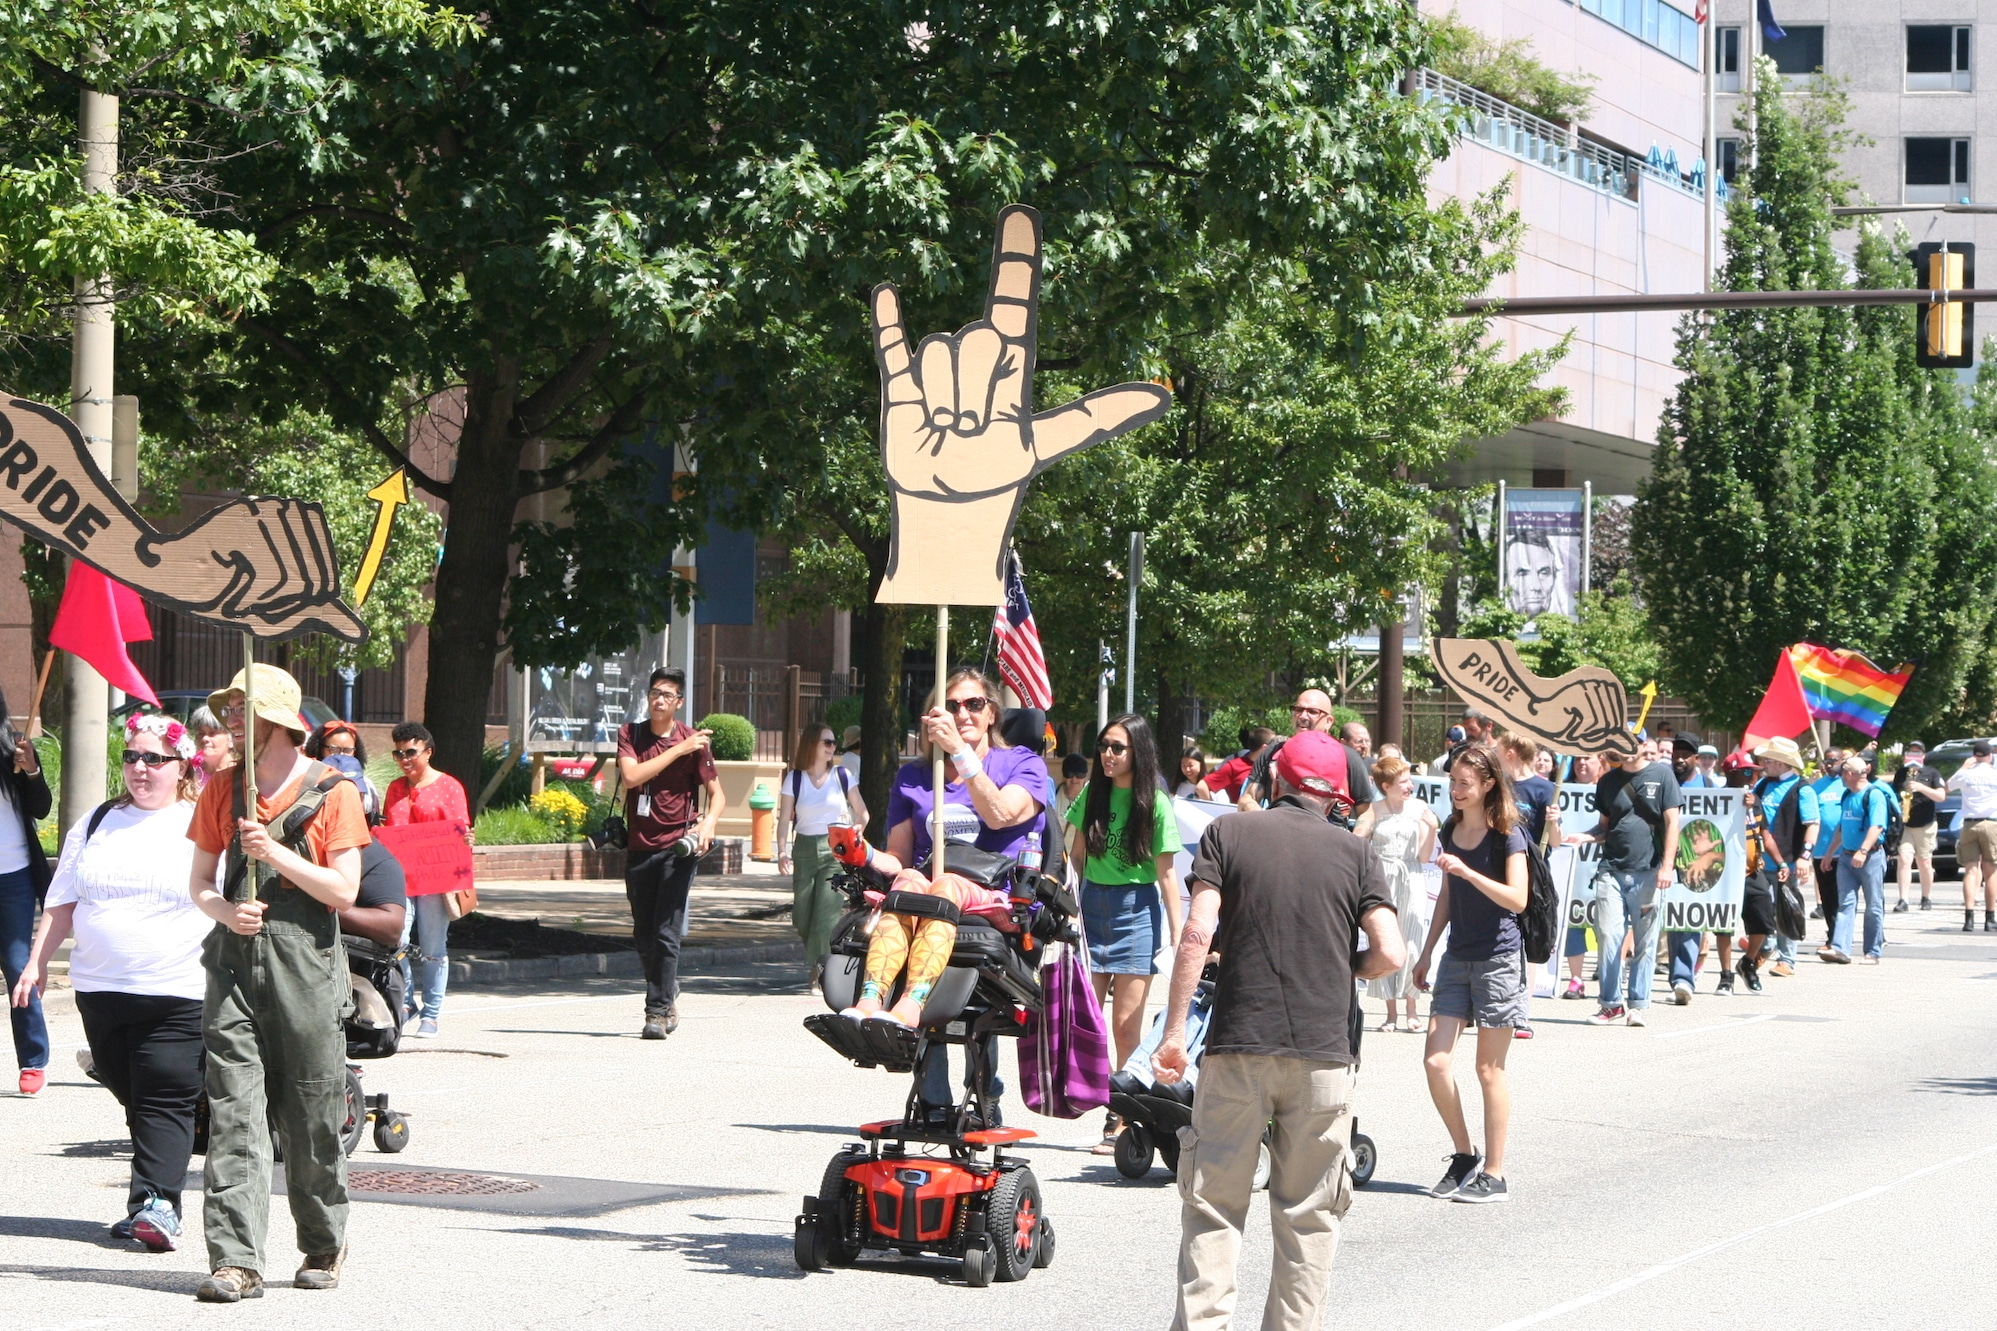 """A woman in a power wheelchair holds a sign showing """"I love you"""" in American Sign Language. Many people are marching and rolling behind her holding various signs."""